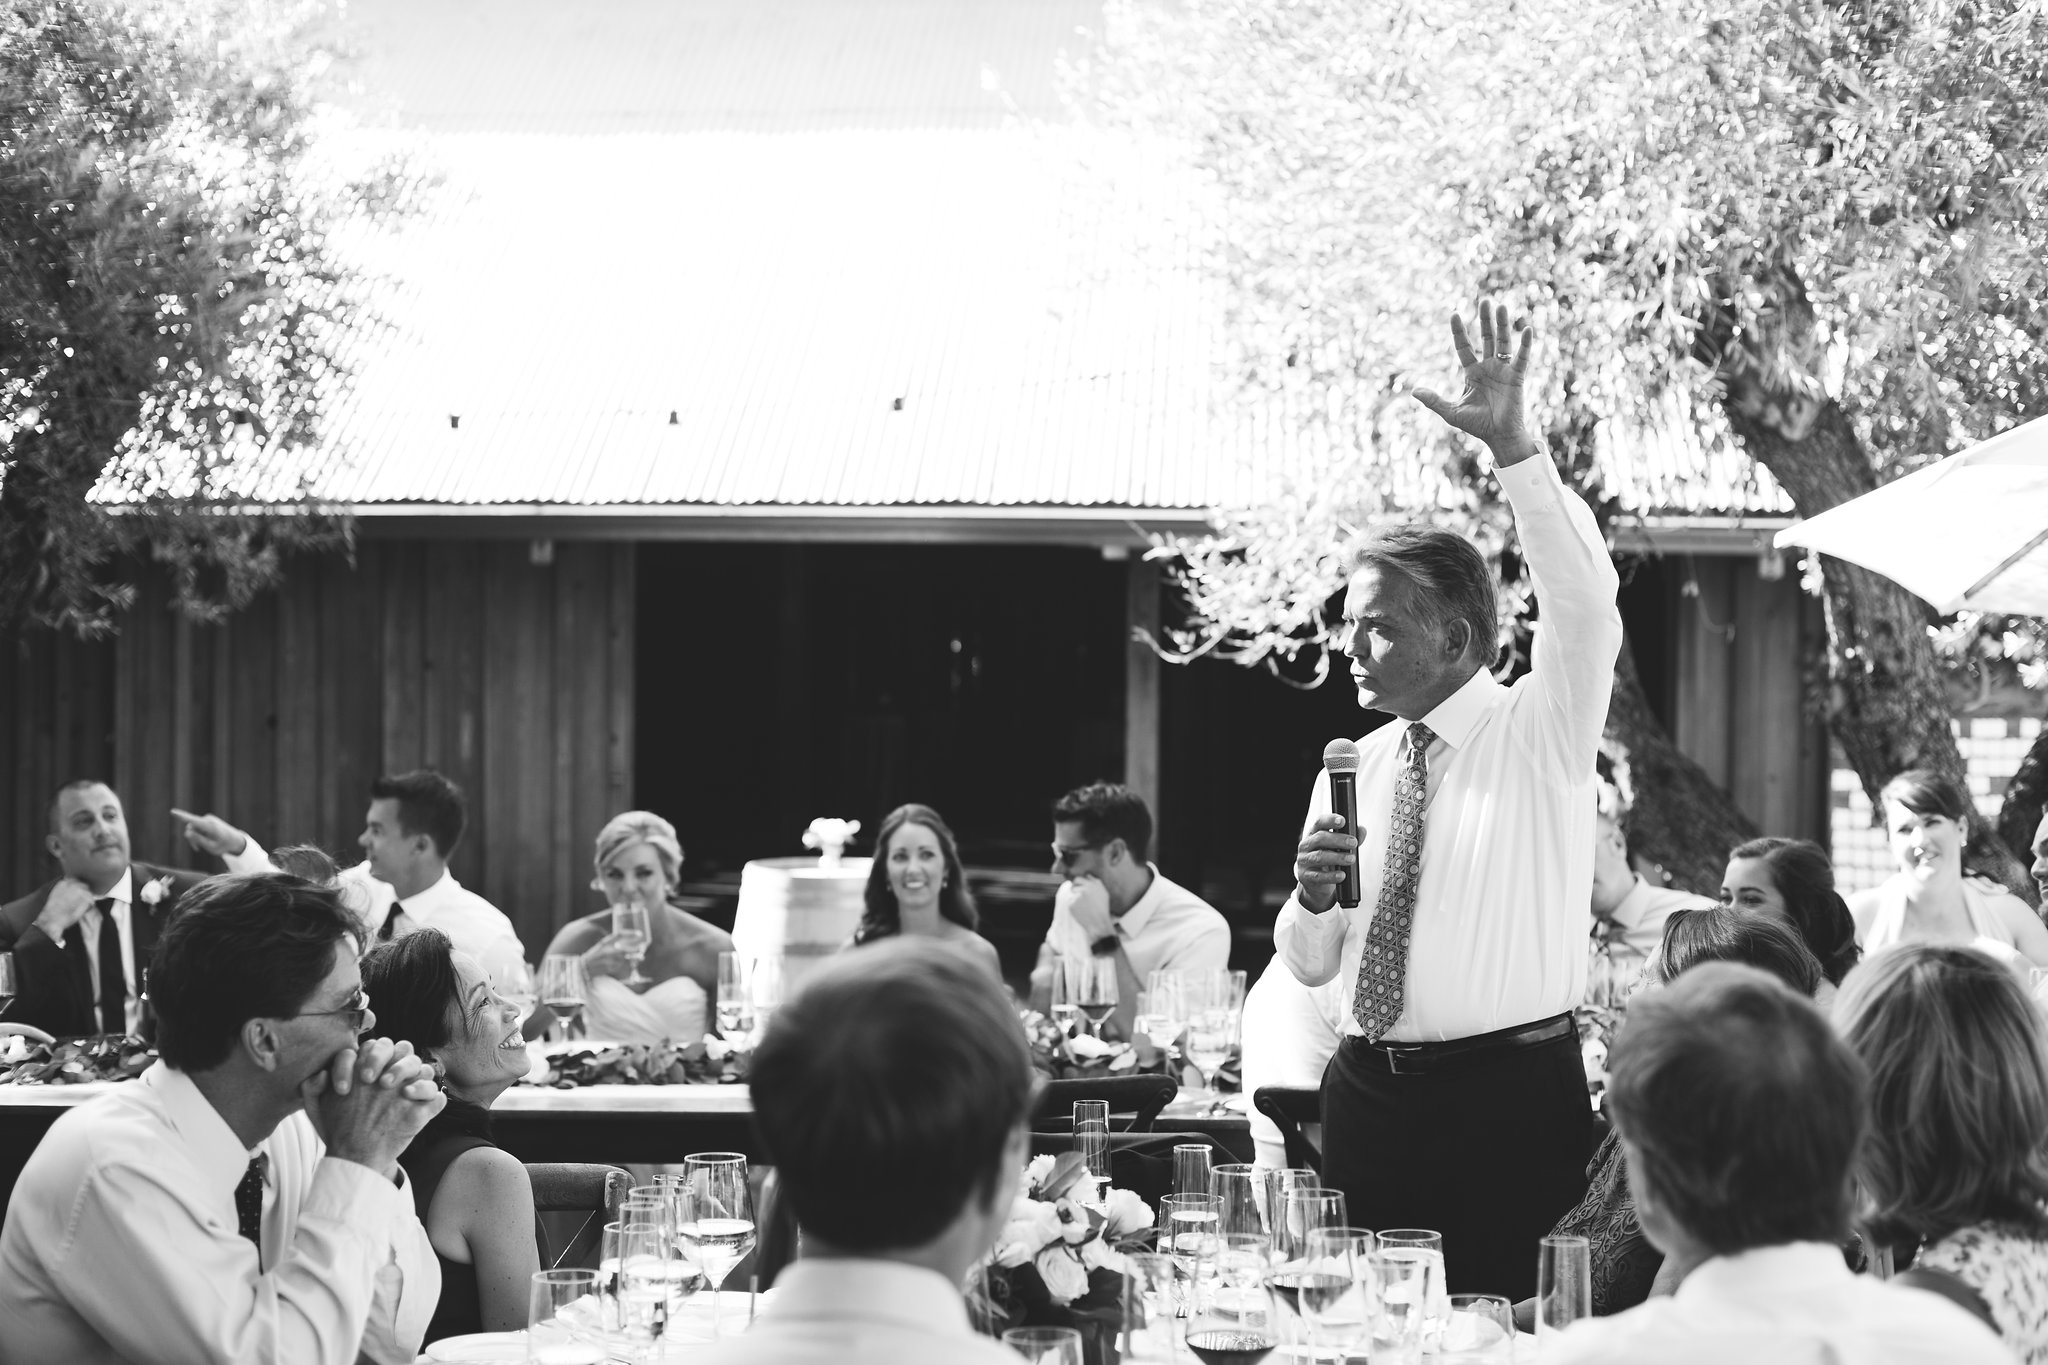 rus-farm-wedding-healdsburg-heald-wedding-consulting-hwc-toasts-father.jpg